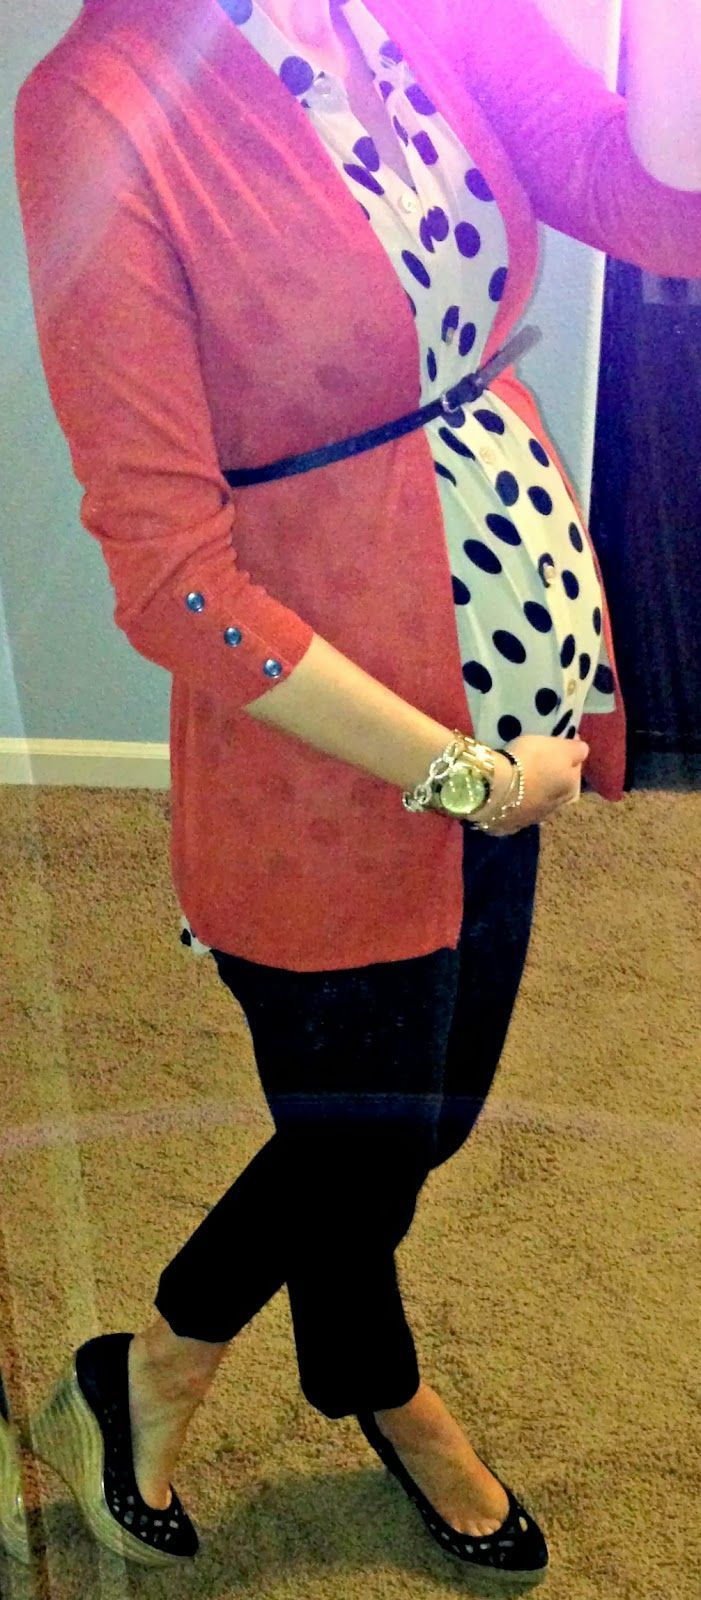 Not yet, but...Katie's Closet, maternity fashion, maternity style, pregnancy fashion, pregnancy style